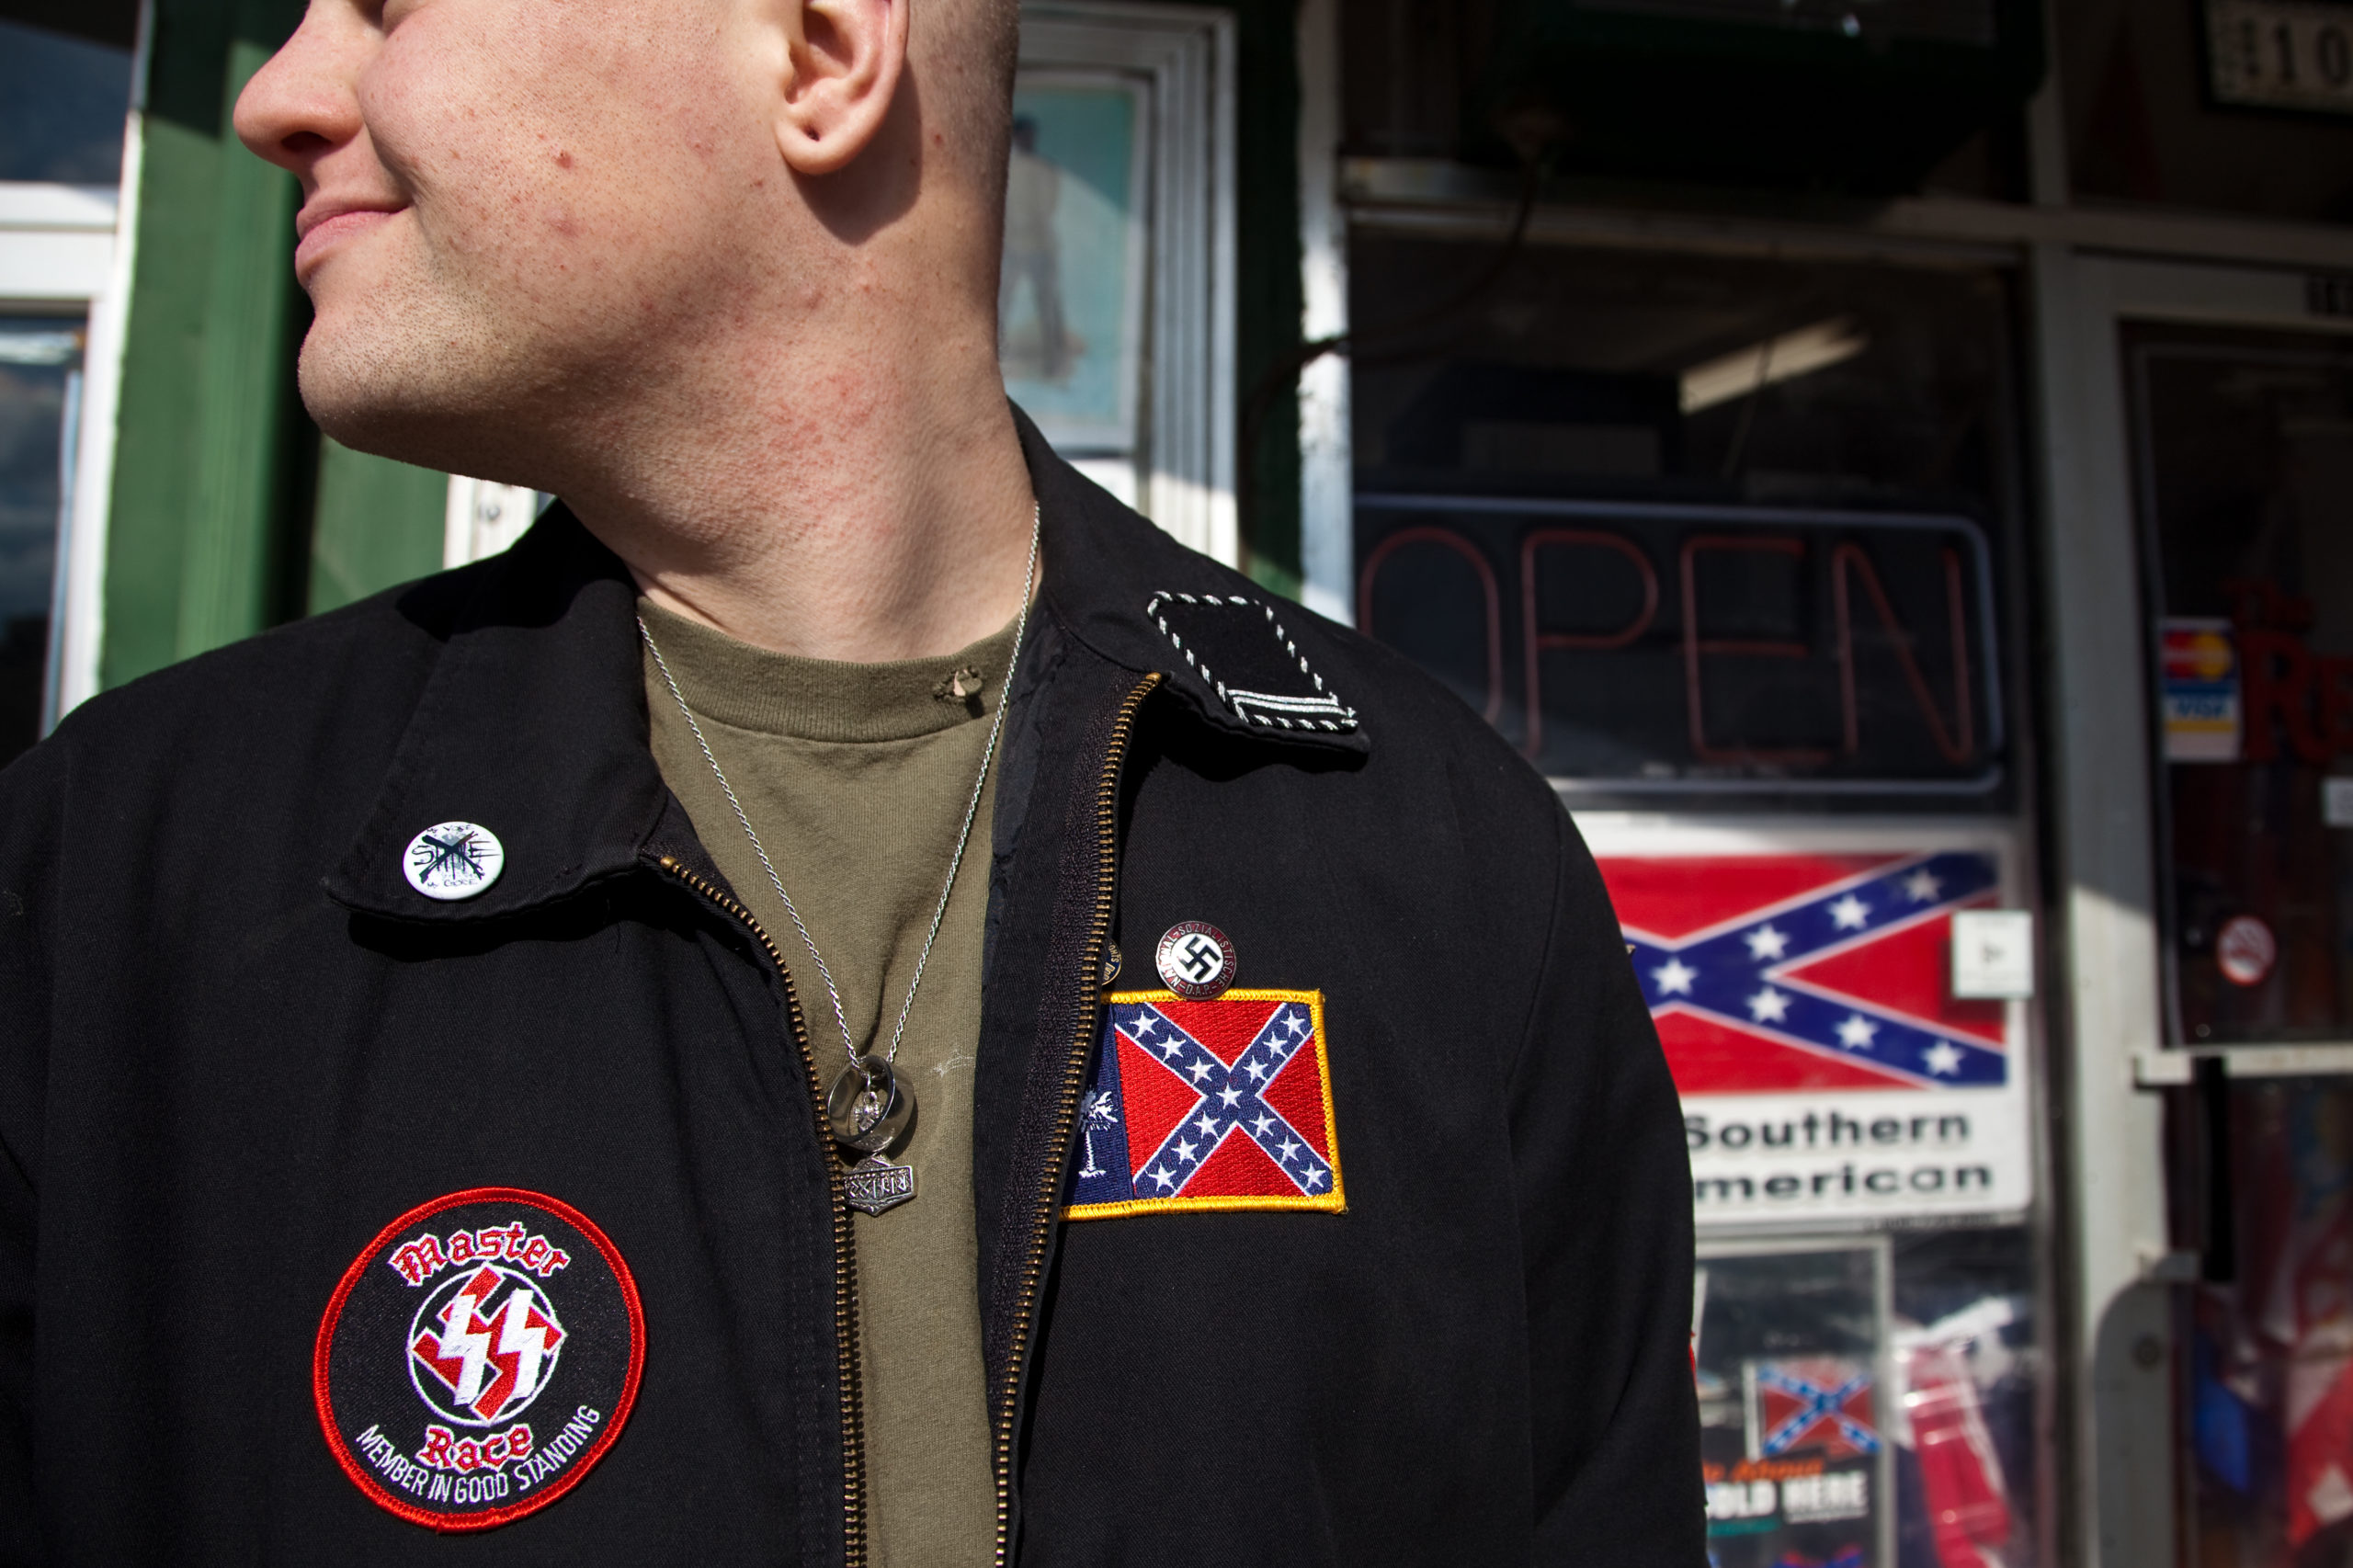 An American Nazi Party member gathers during a white-supremacist event outside the Redneck Shop December 5, 2009 in Laurens, South Carolina. (Photo by Richard Ellis/Getty Images)